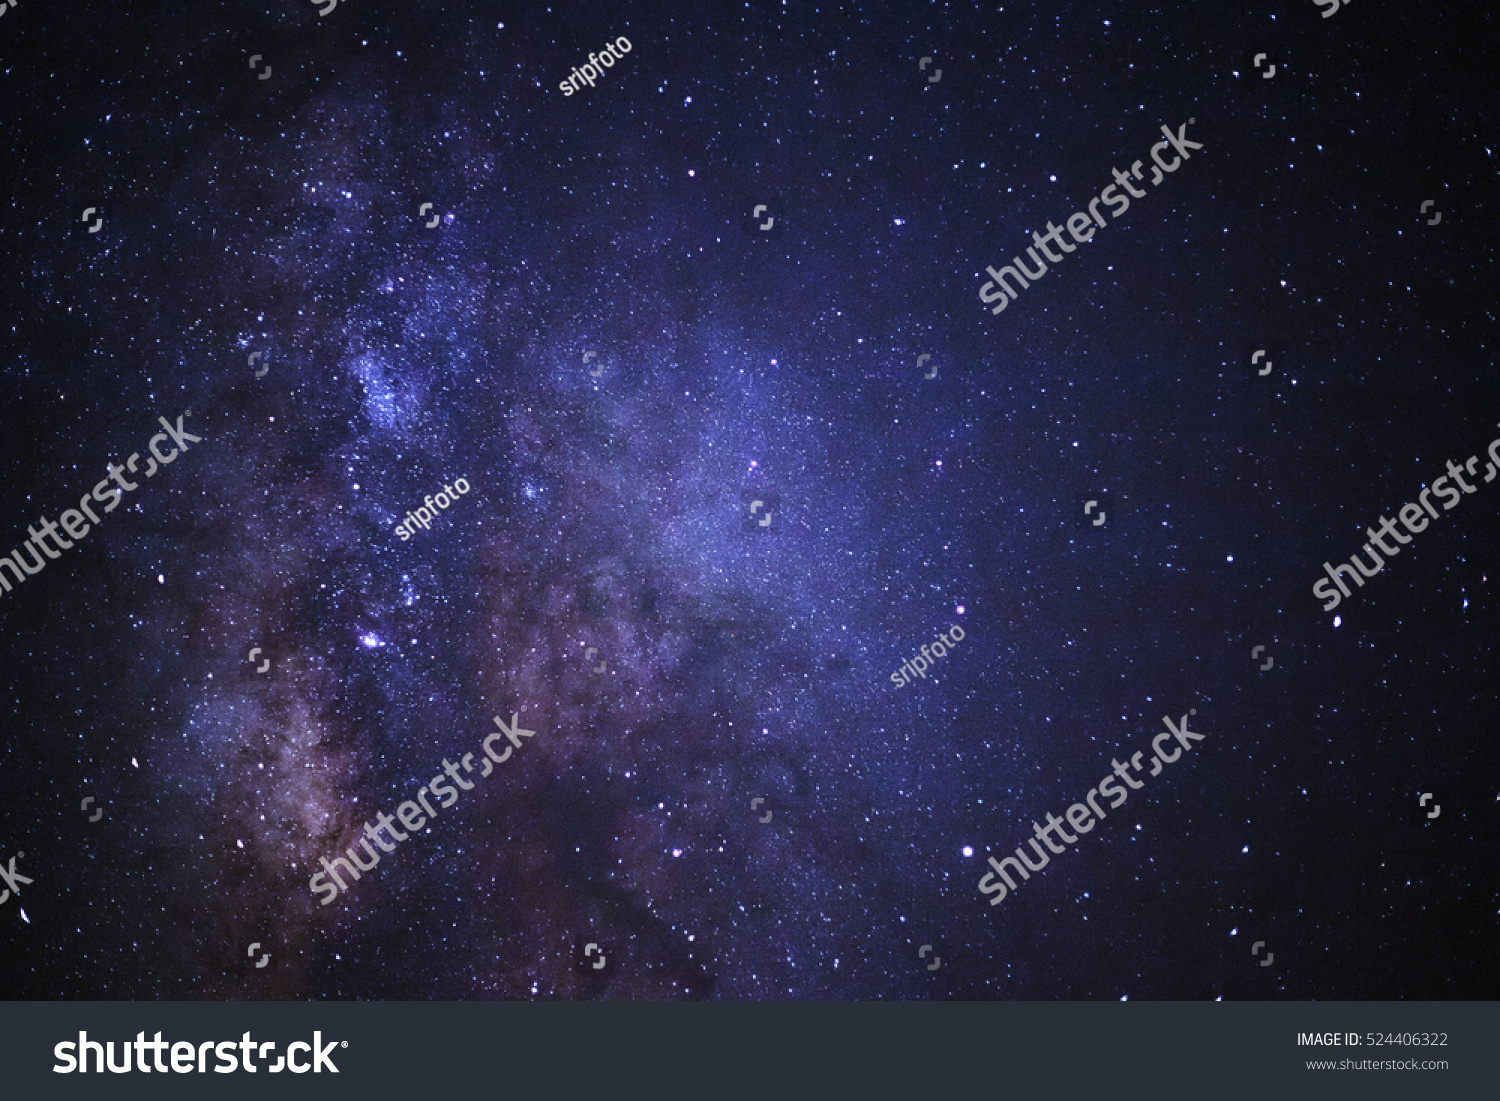 Close-up of Milky way galaxy with stars and space dust in the universe, Long exposure photograph, with grain. #524406322